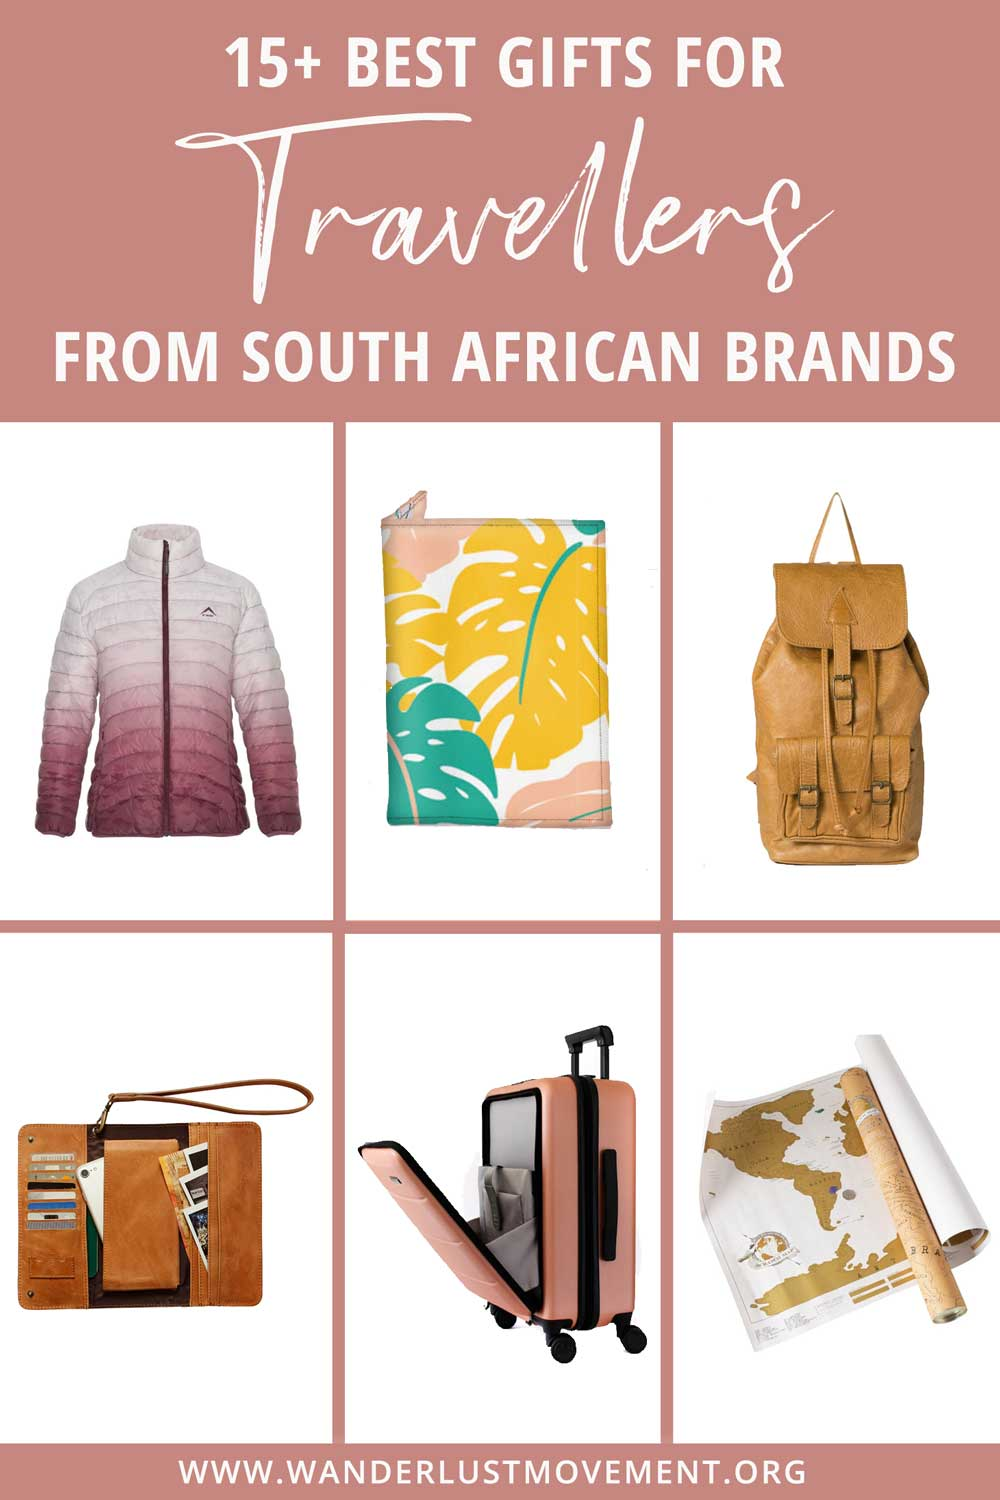 The Best Gifts for Travellers From South African Brands